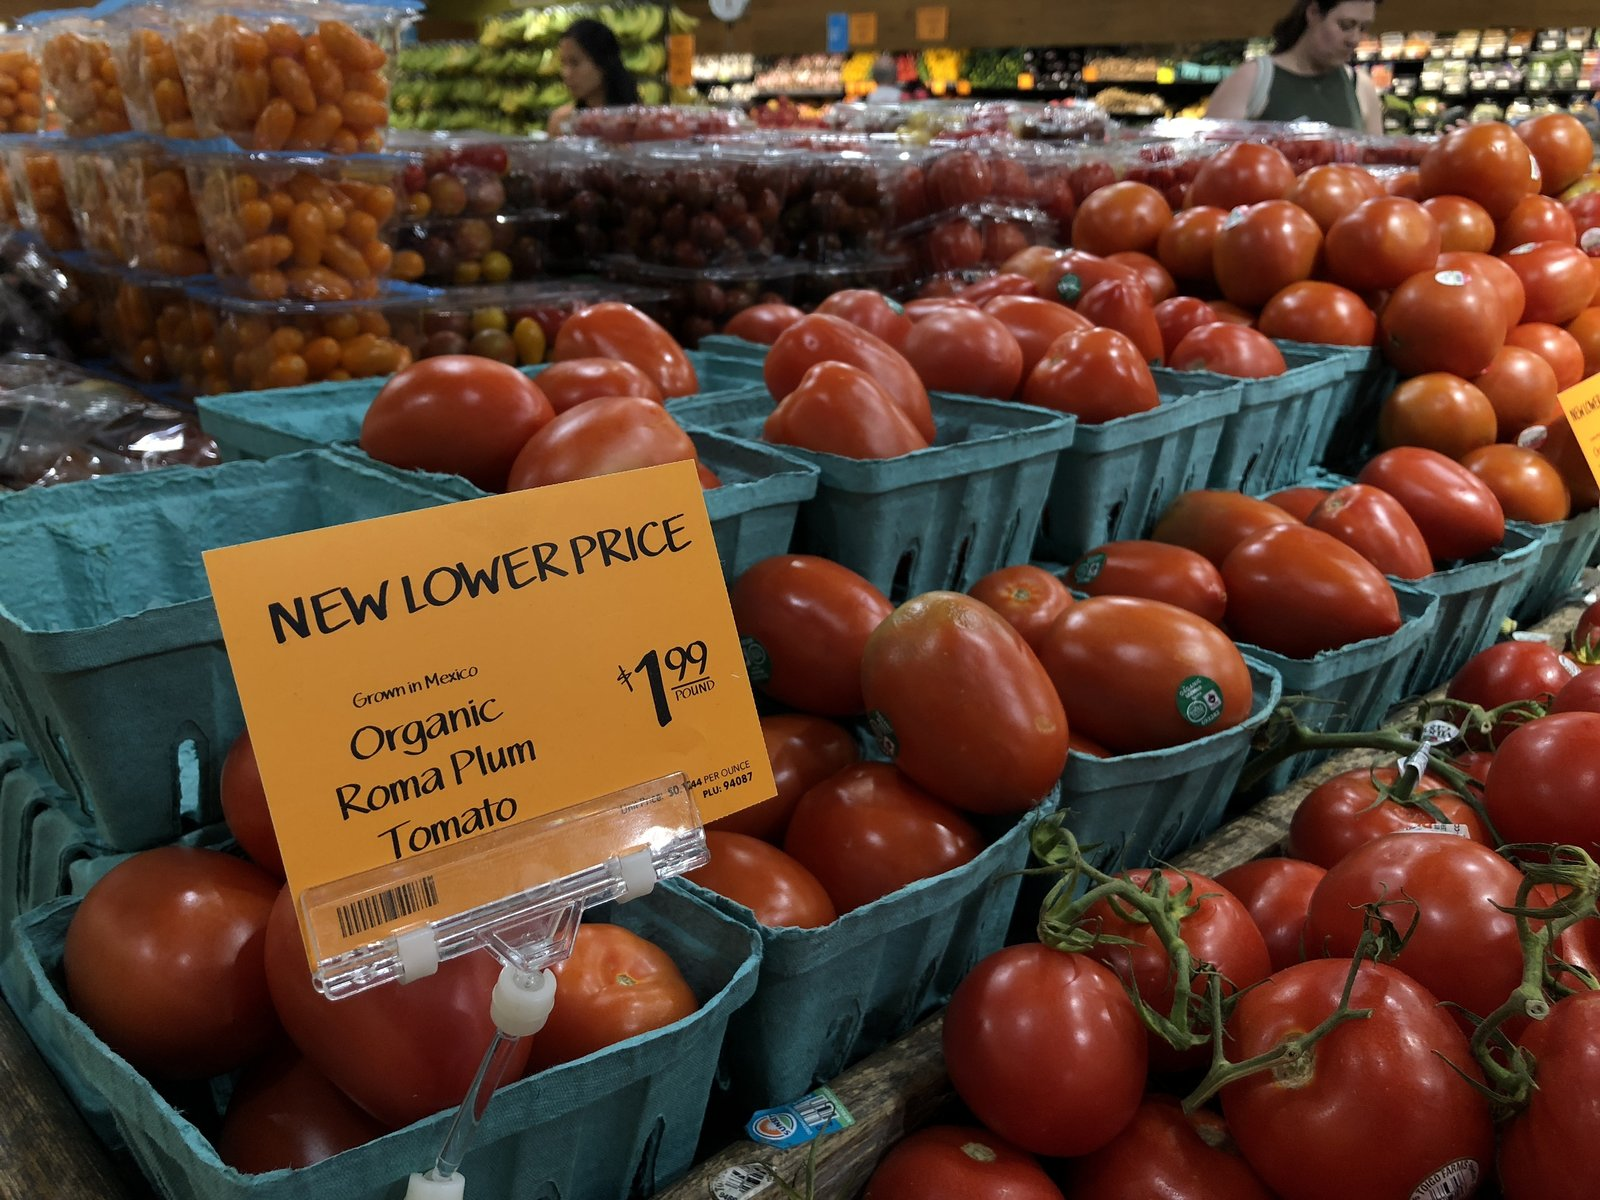 A variety of tomatoes for sale at a grocery store